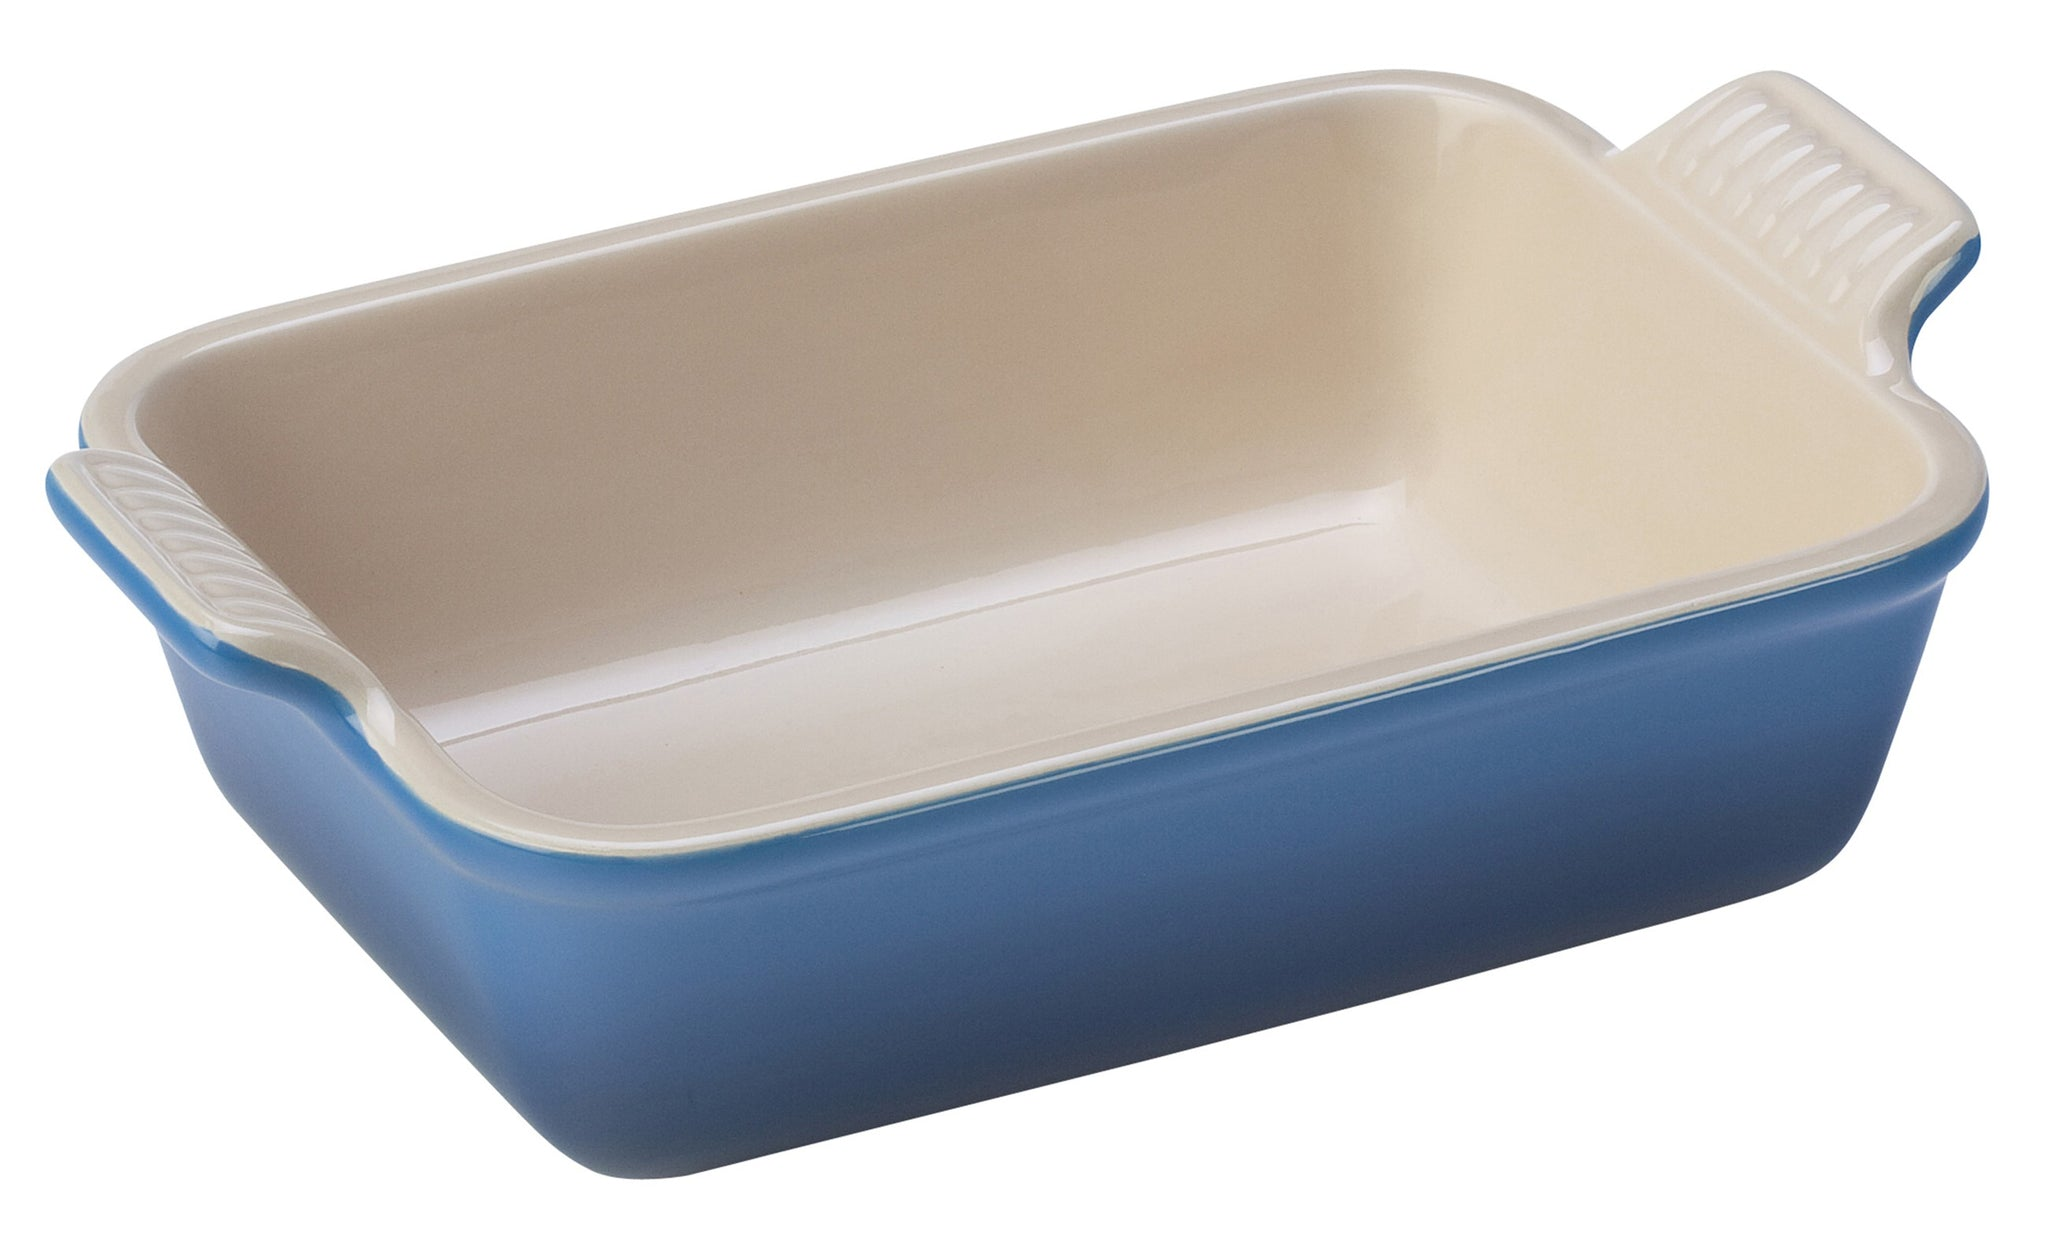 Le Creuset Heritage Rectangle Oven Dish